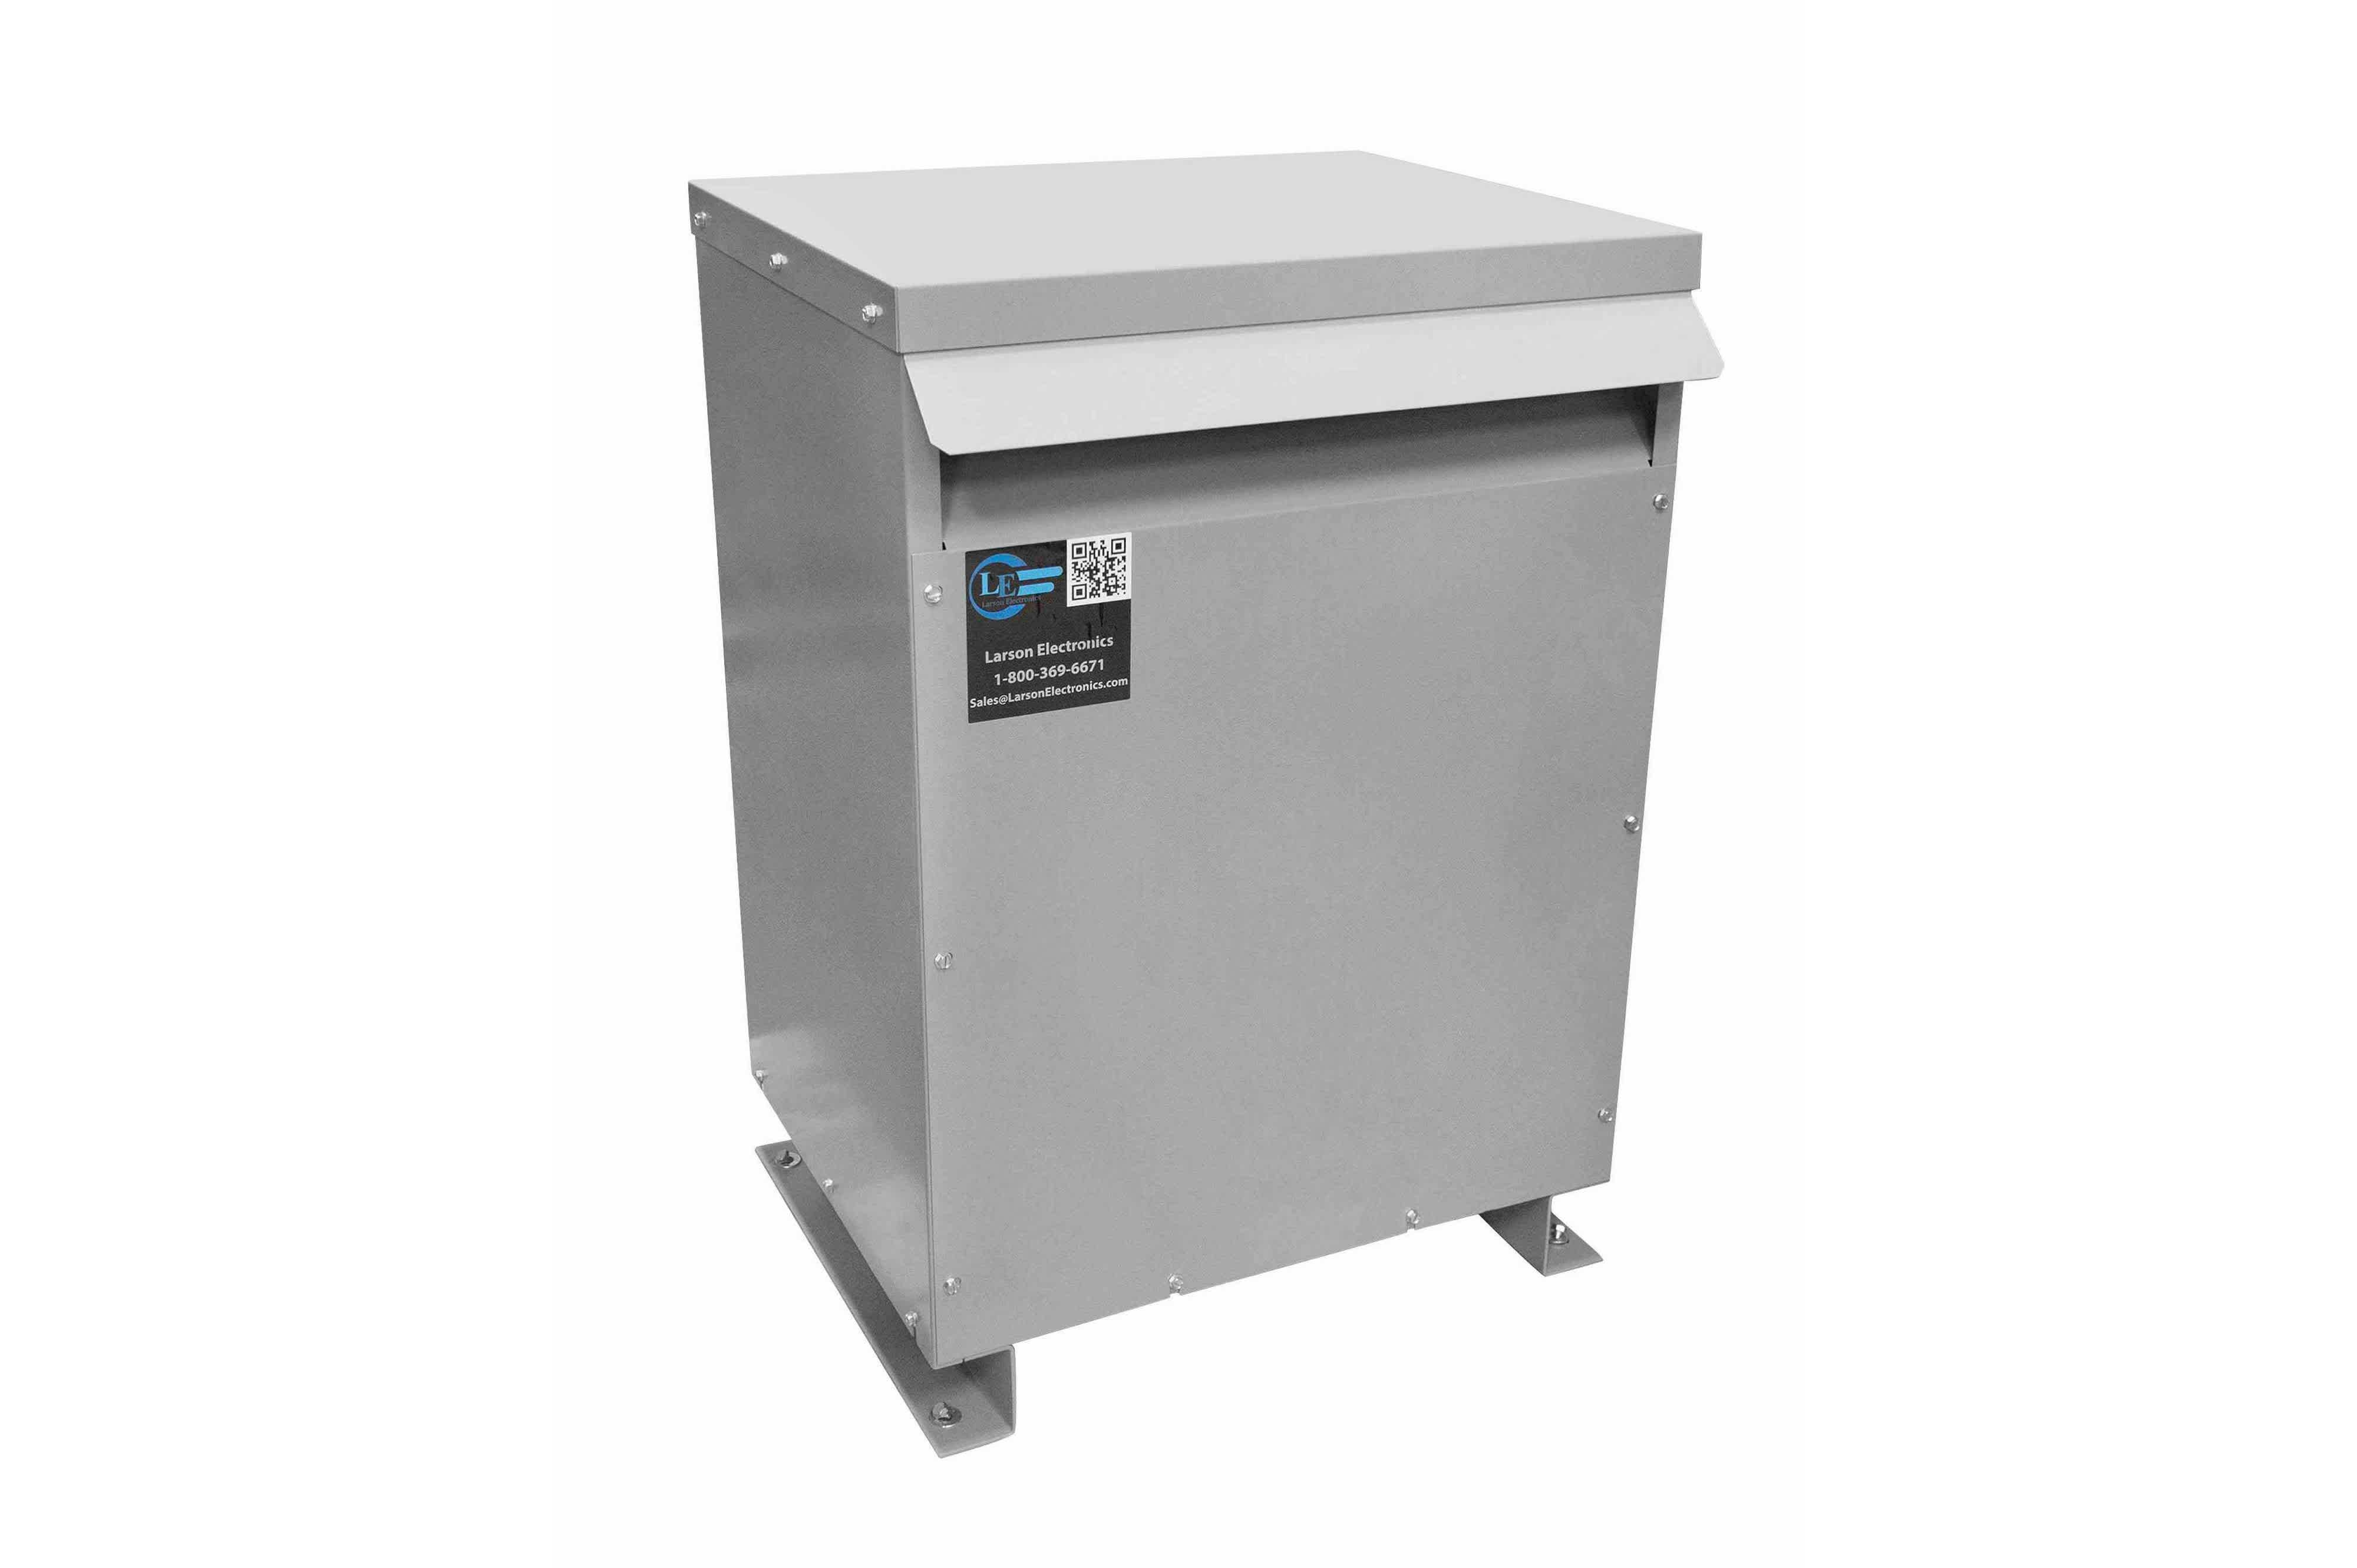 38 kVA 3PH Isolation Transformer, 575V Wye Primary, 415Y/240 Wye-N Secondary, N3R, Ventilated, 60 Hz